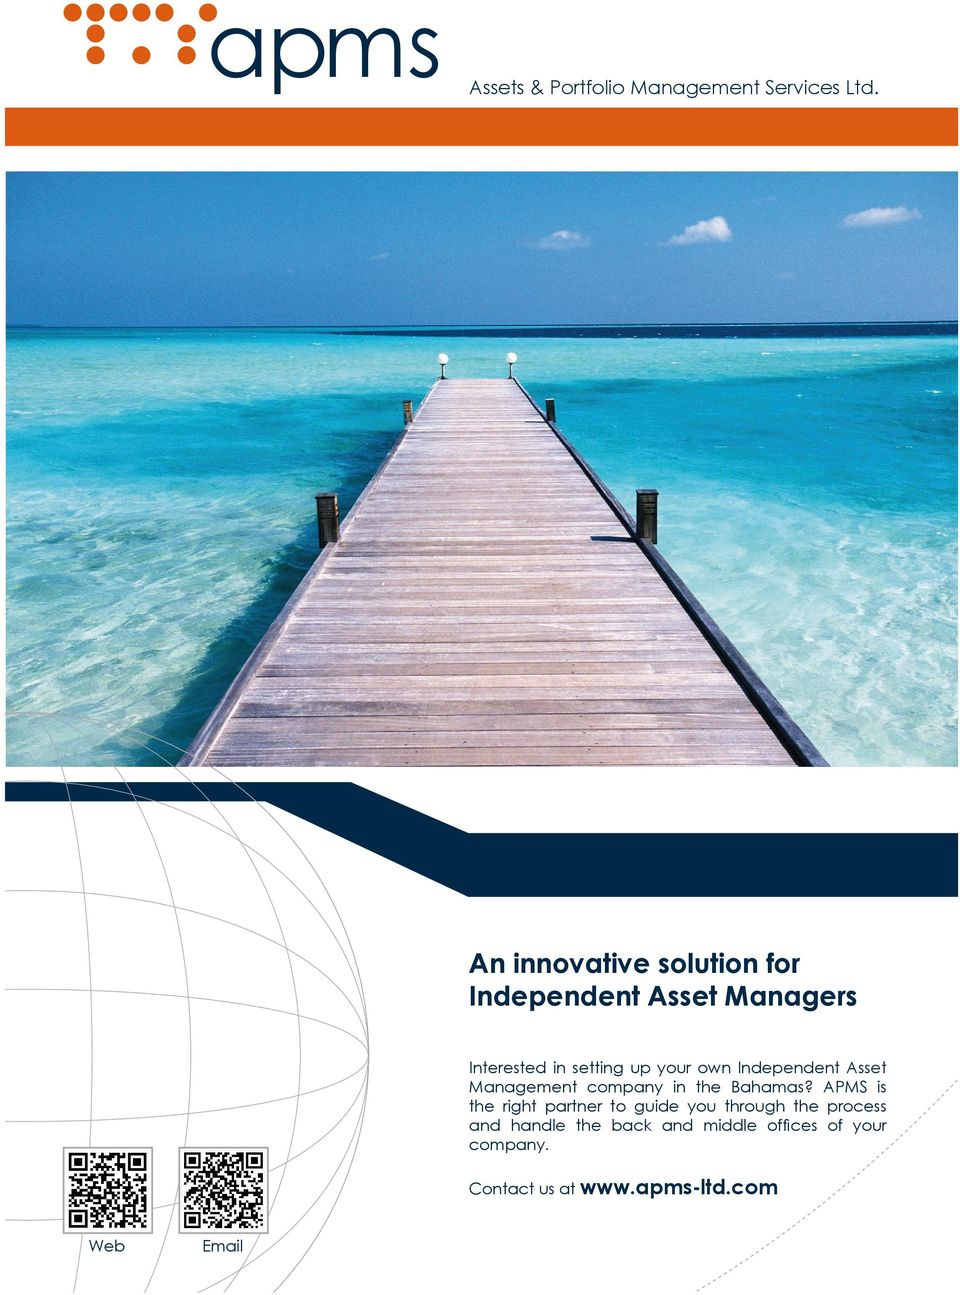 own Independent Asset Management company in the Bahamas?